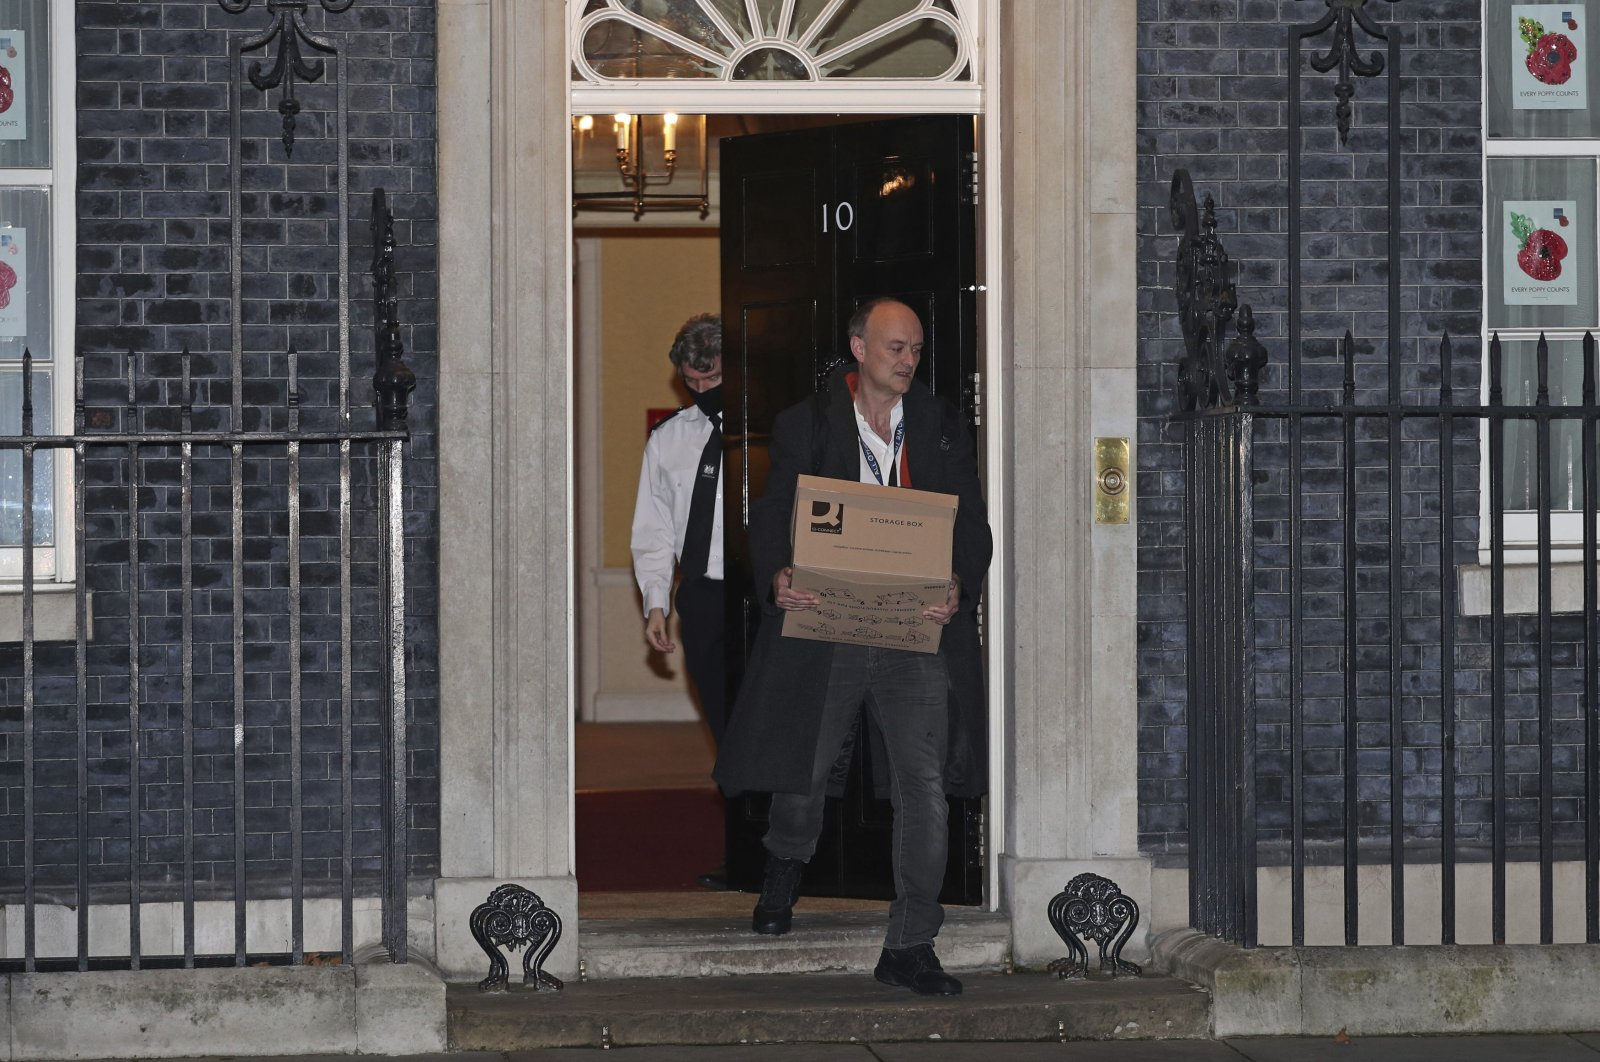 Britain's Prime Minister Boris Johnson's top aide Dominic Cummings leaves 10 Downing Street with a box, in London, Friday, Nov. 13, 2020. (AP Photo)